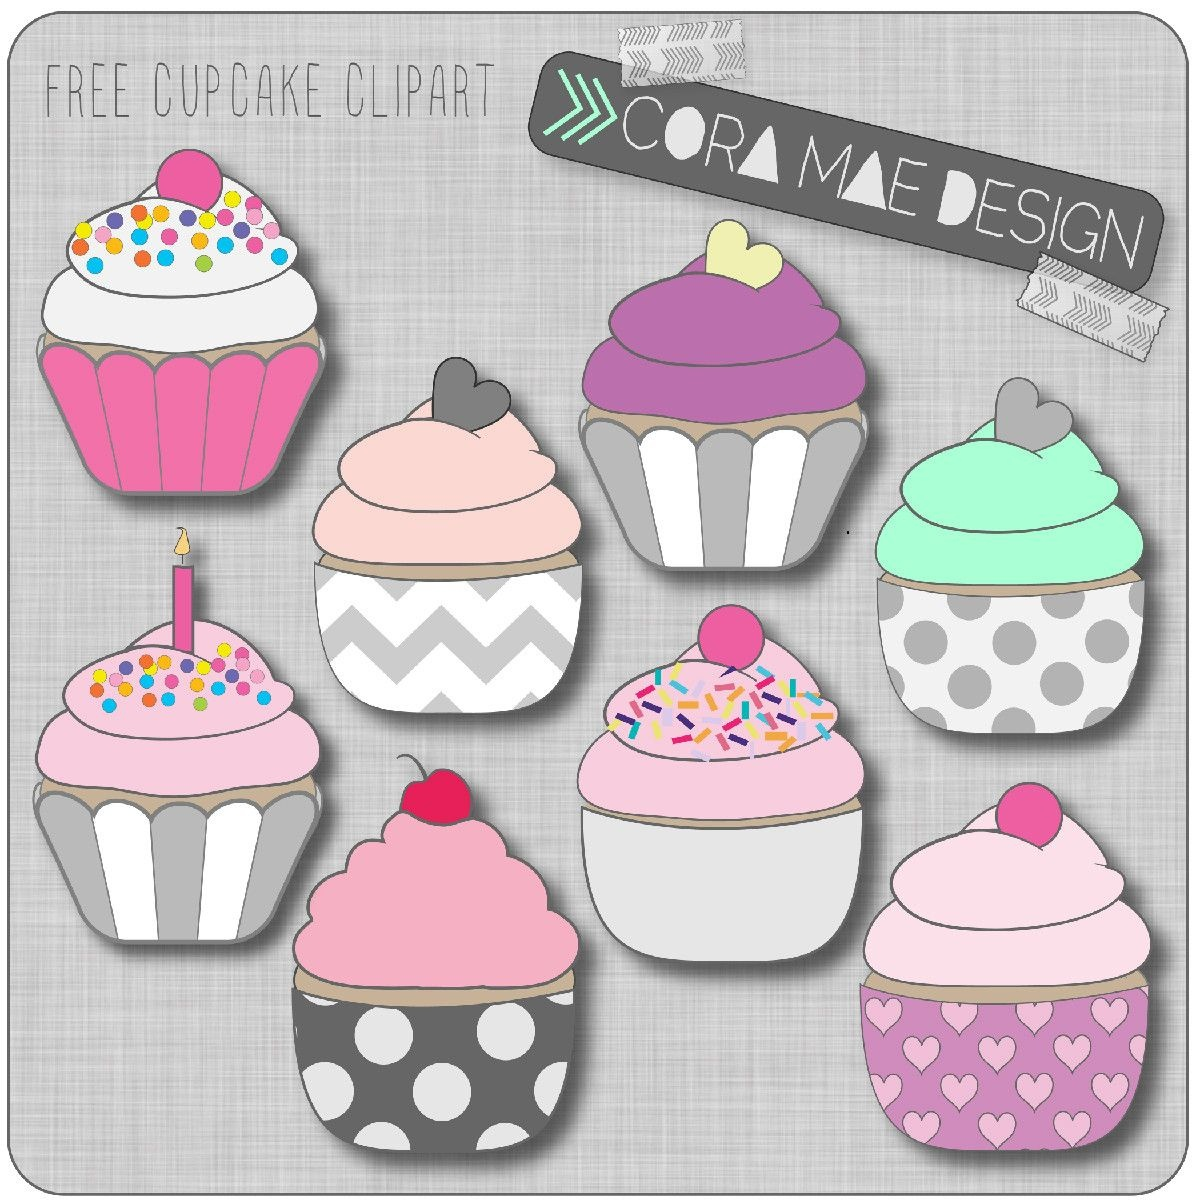 Free Printable Cupcake Clipart For Junk Journals, Art Journals Or - Free Printable Cupcake Clipart